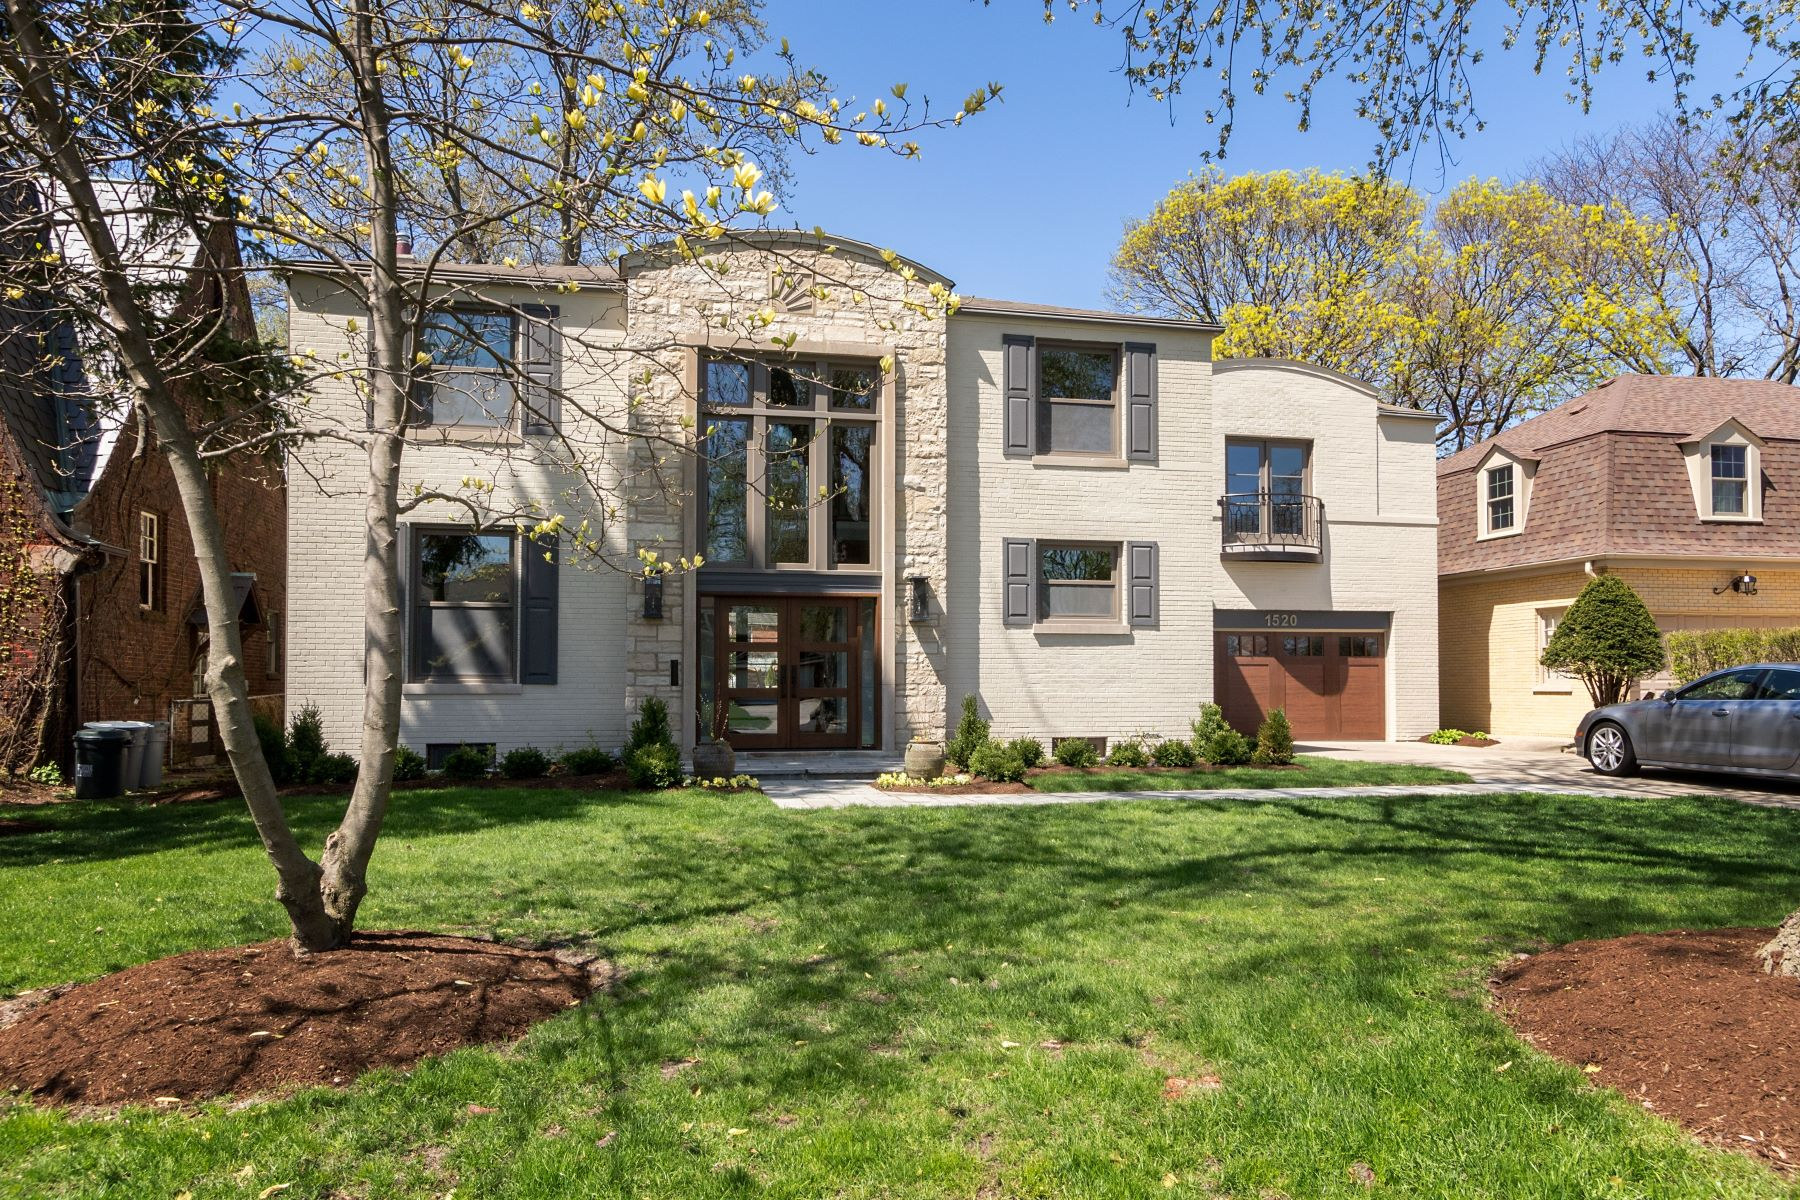 Single Family Homes for Sale at Elegant River Forest Home 1520 Franklin Avenue River Forest, Illinois 60305 United States